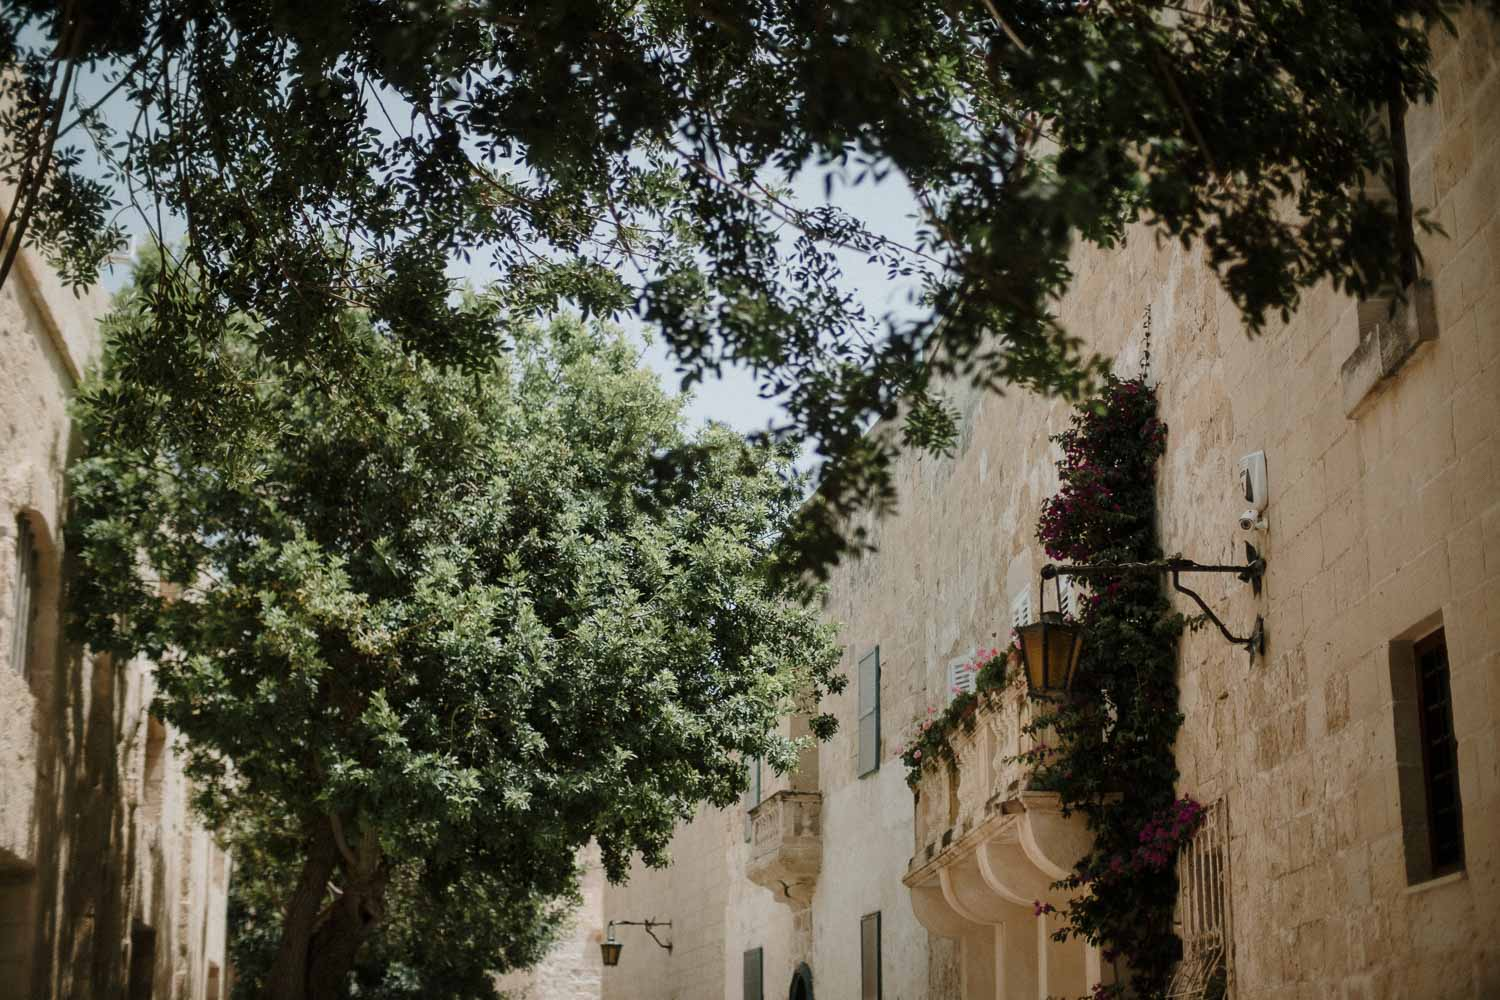 Malta Mdina Destination Wedding Photographer Villa Mdina LozzyRichard Stuart Dudleston Photography 1 1